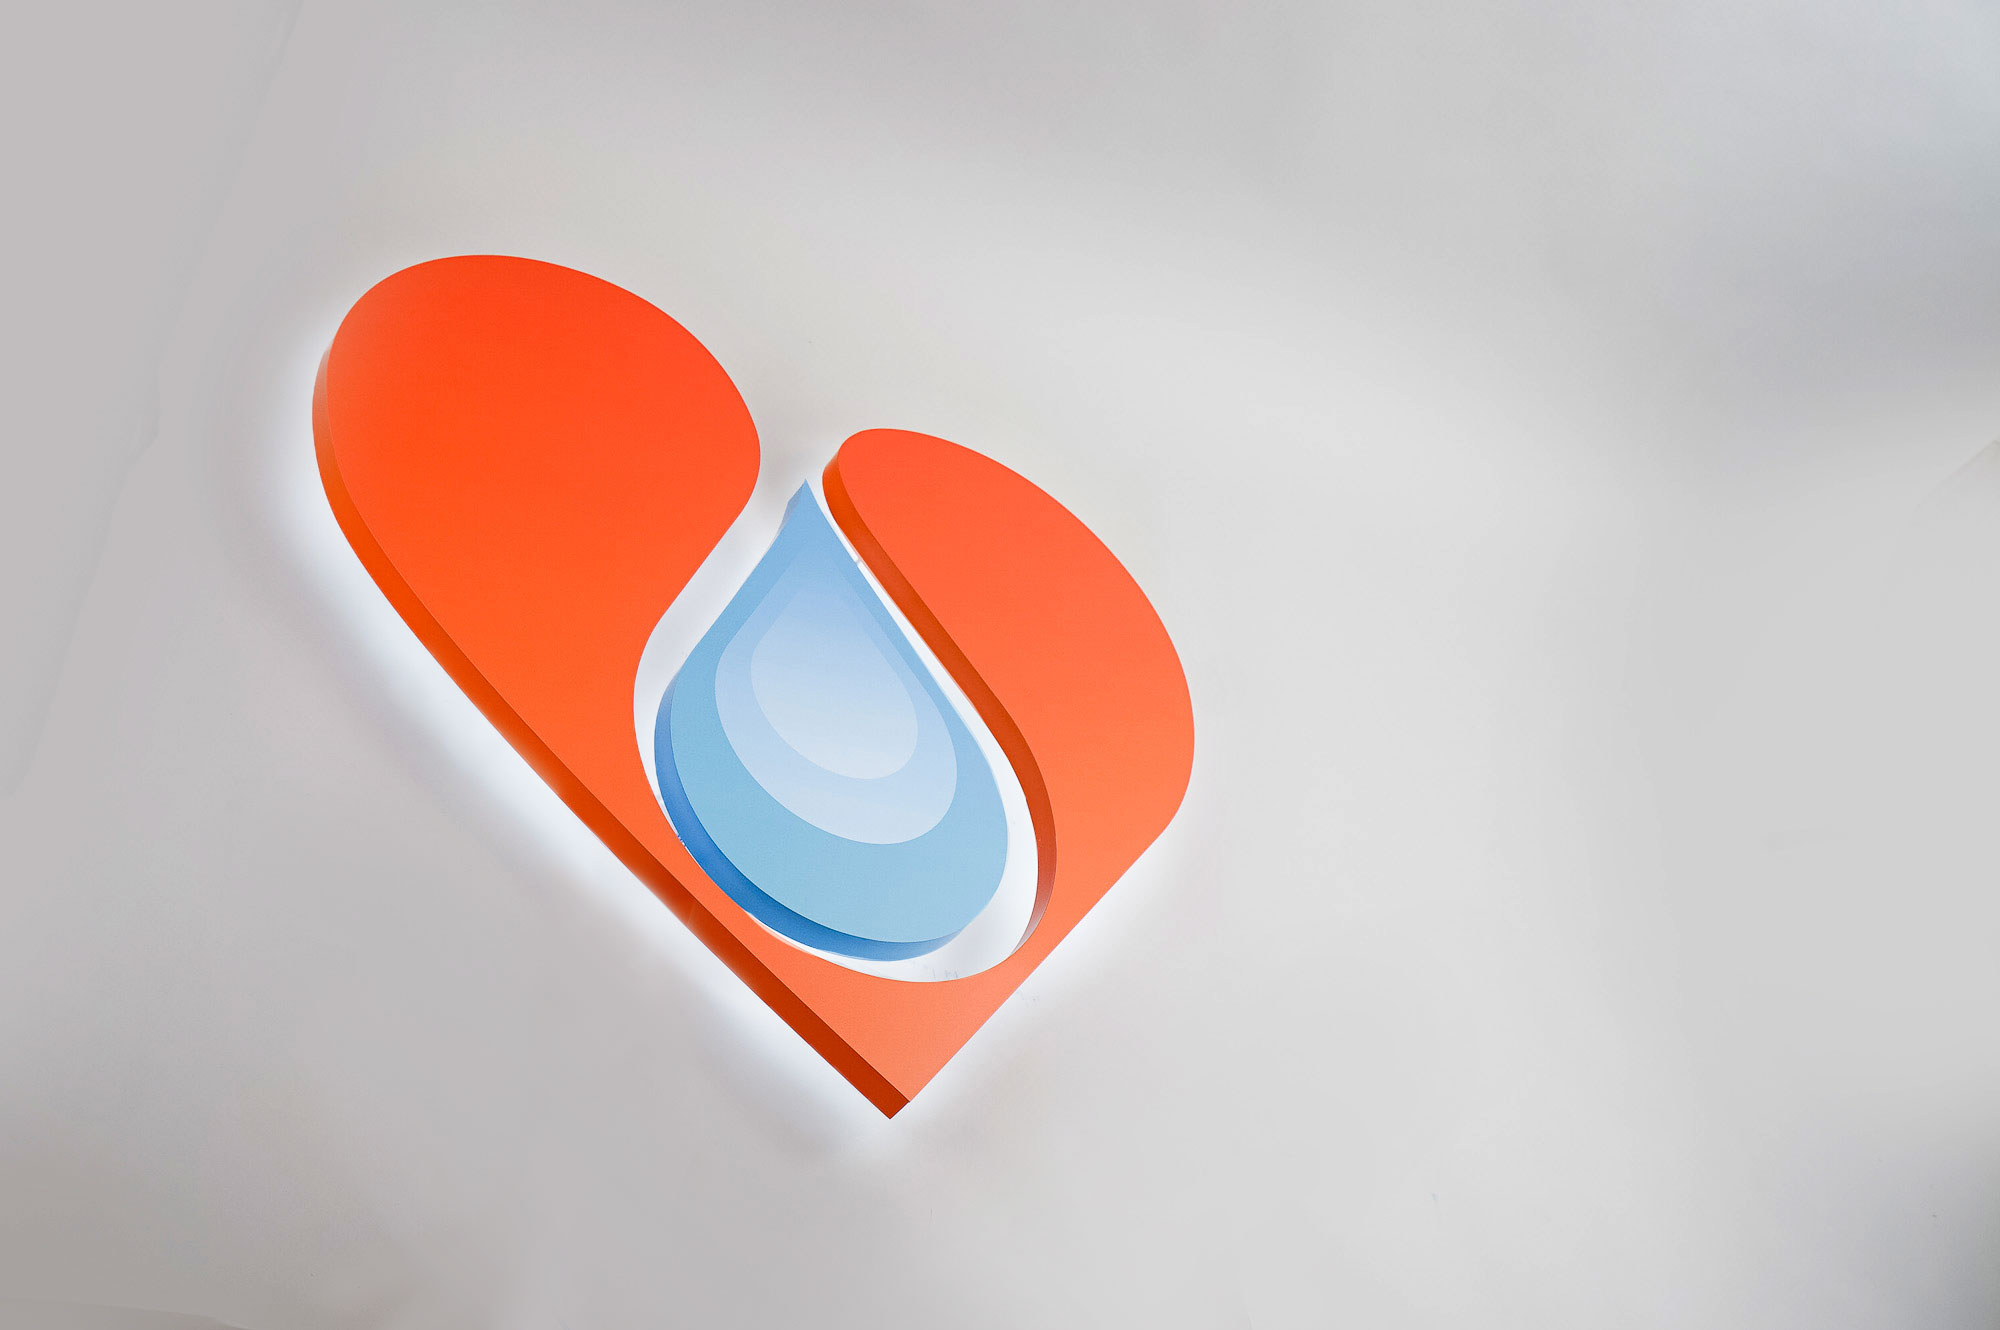 Illuminated heart sign for B12 Love, a San Francisco center offering nutrient therapies.